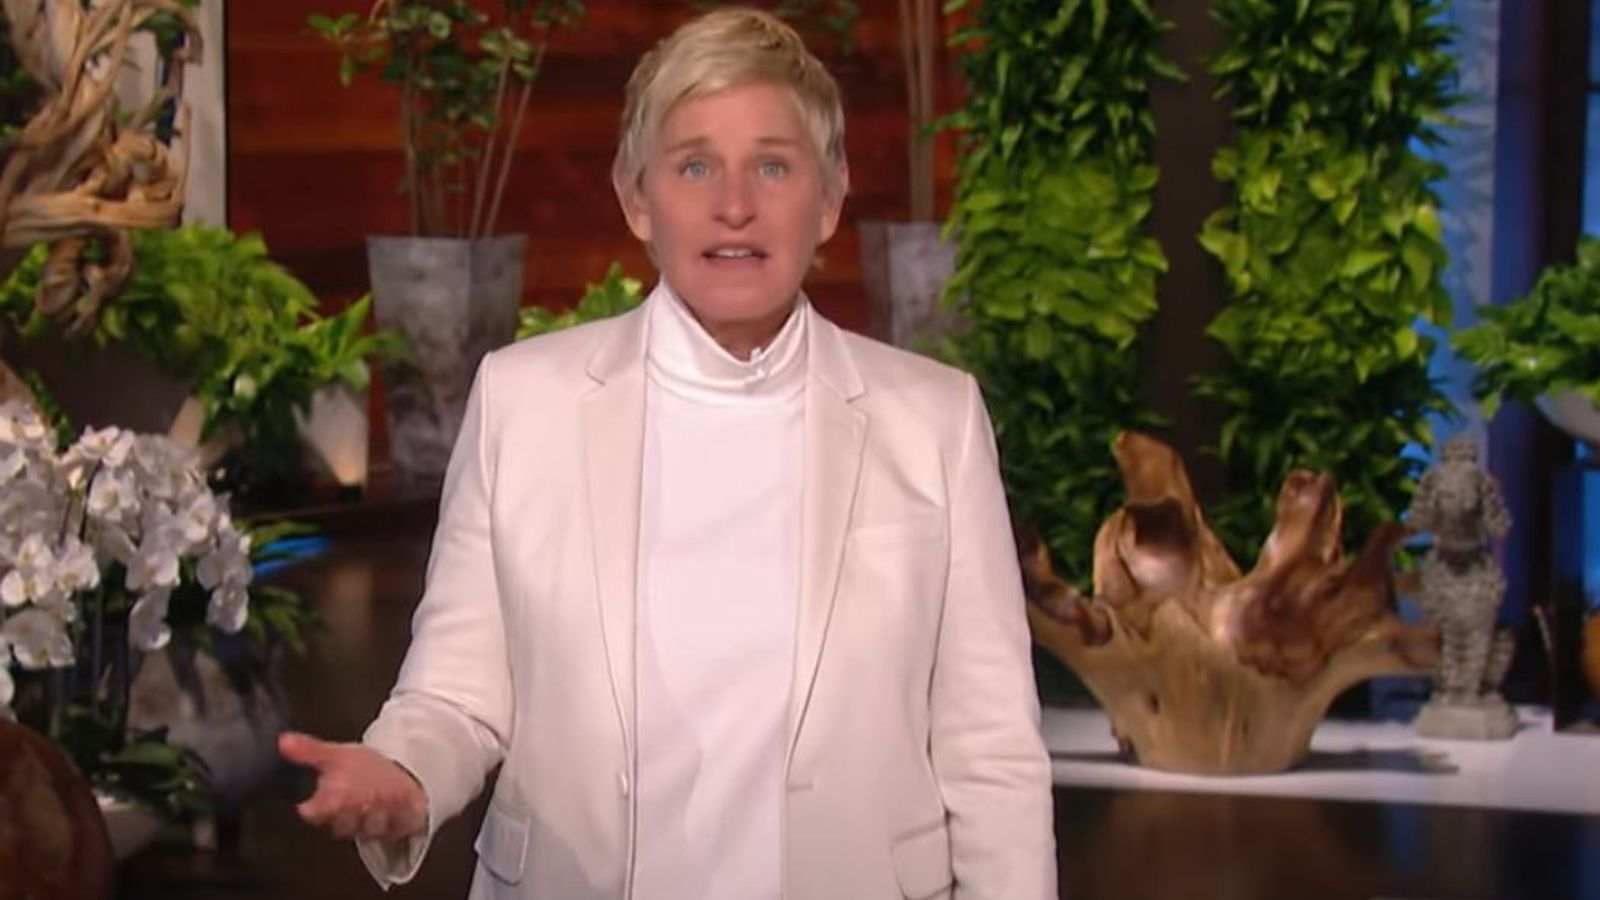 Ellen DeGeneres apologises and says 'things happened that never should have' as TV show returns